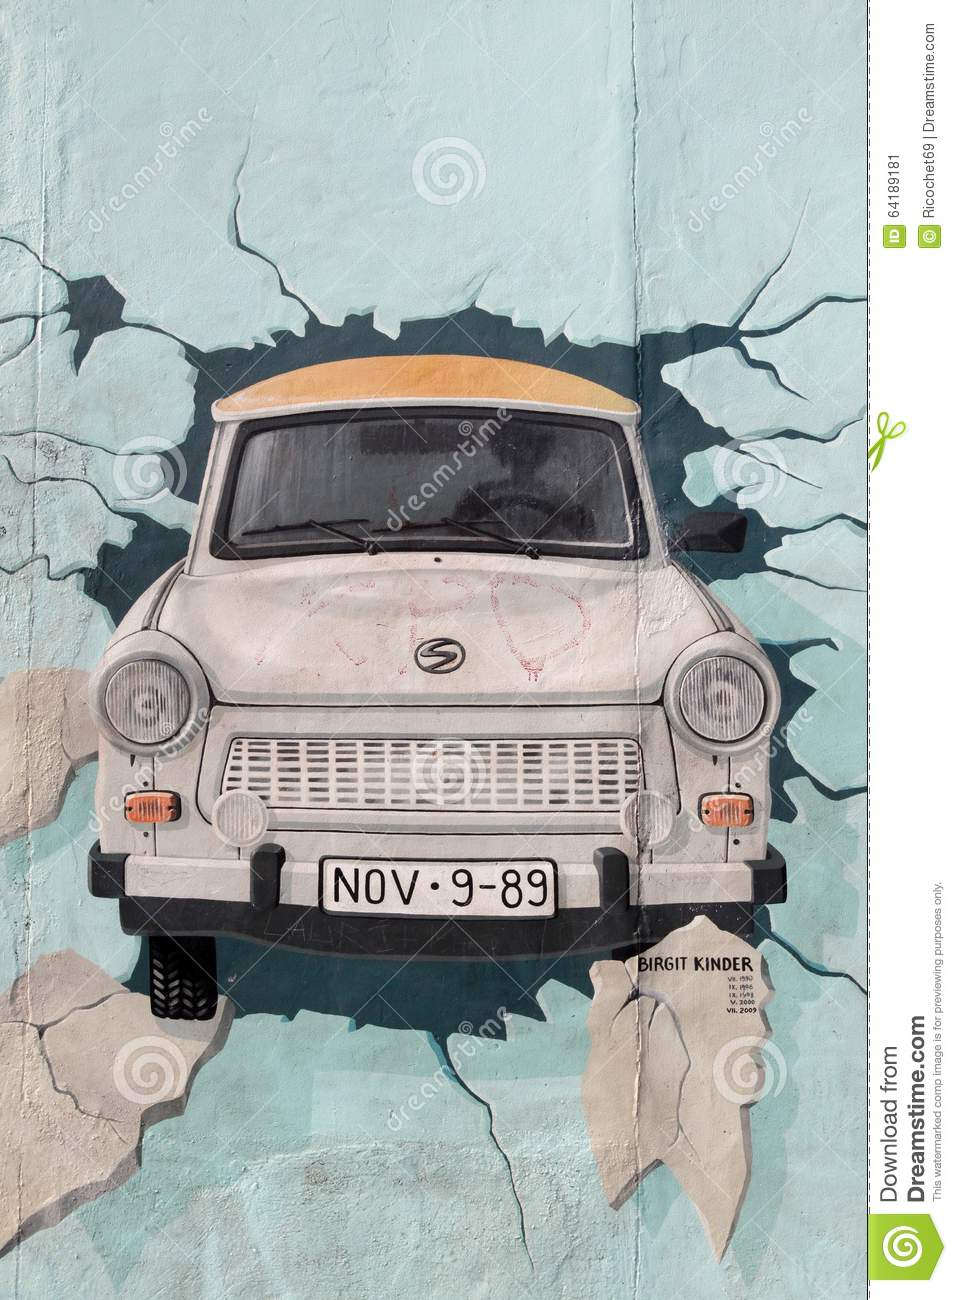 Pittura di trabant al muro di berlino germania fotografia for Pittura muro